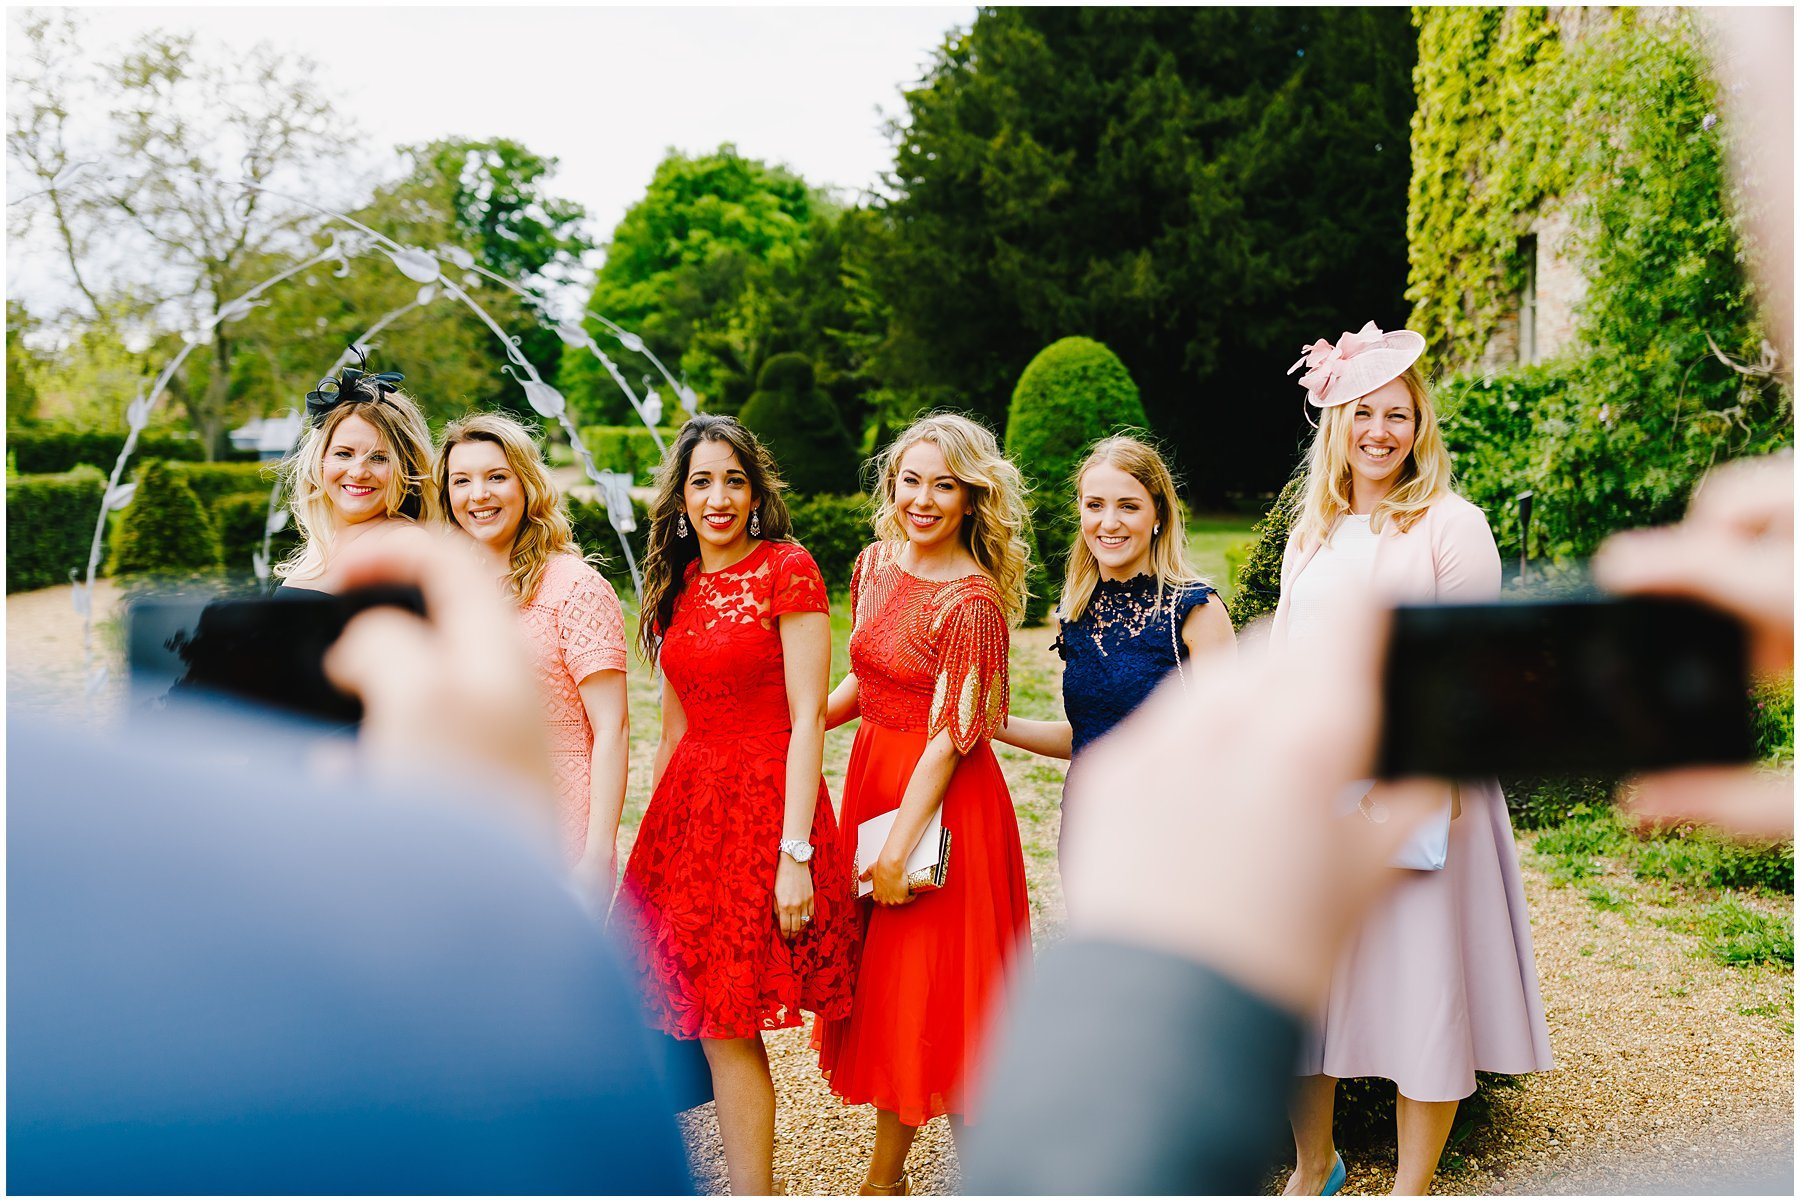 REBEKAH AND PAUL NARBOROUGH HALL WEDDING - NORFOLK WEDDING PHOTOGRAPHER 15